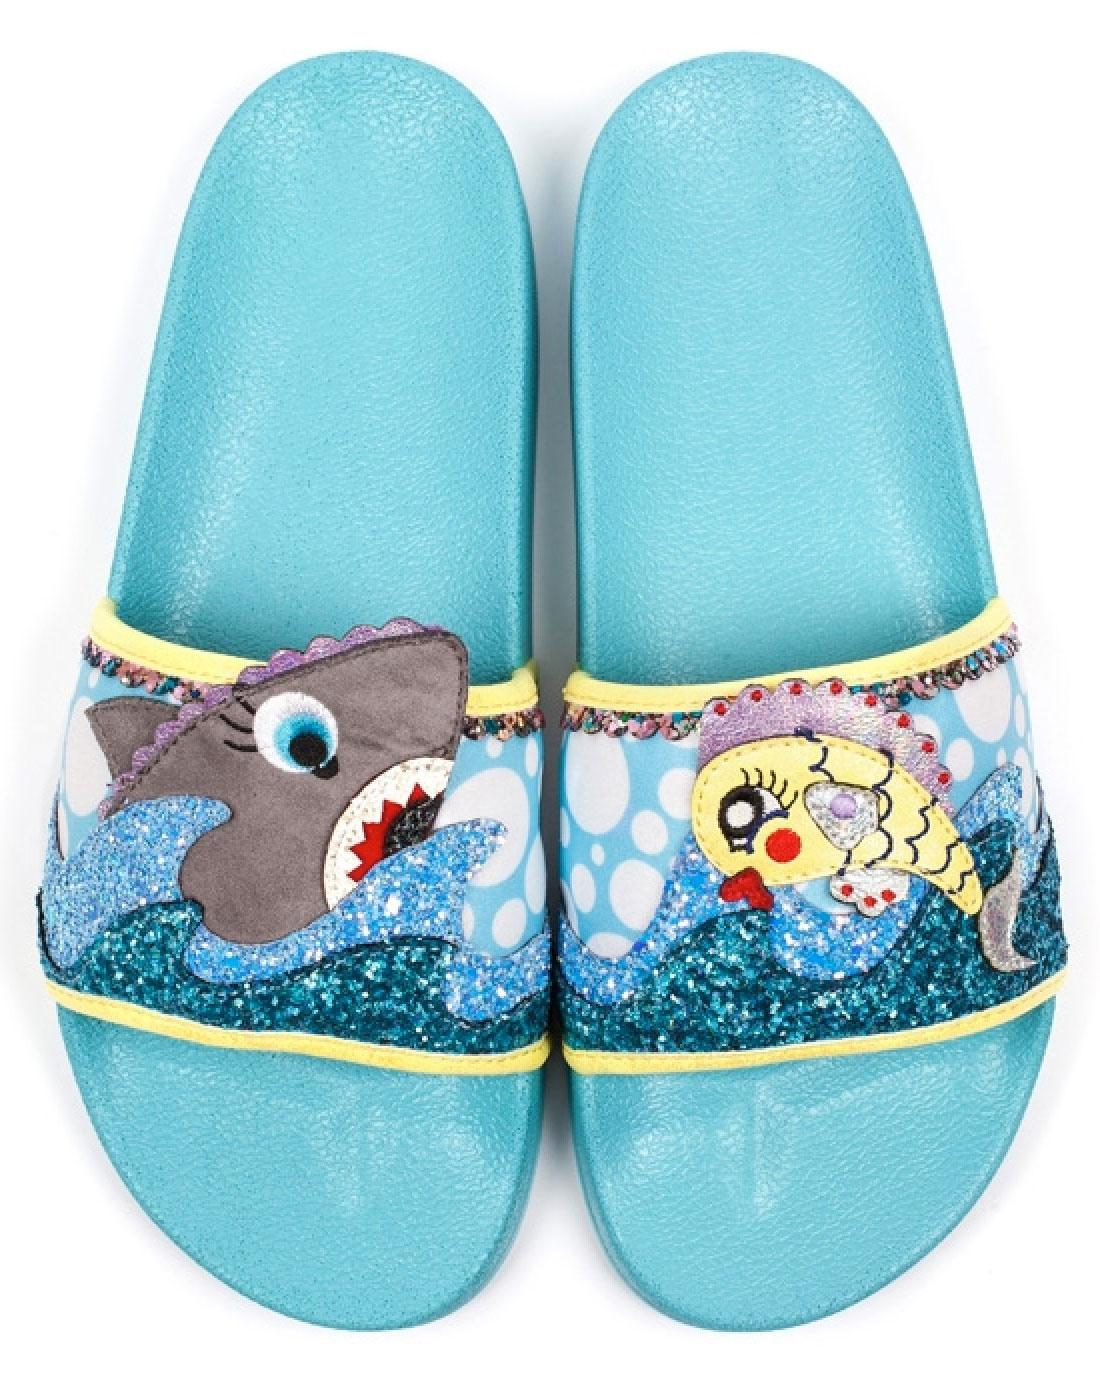 Bubble & Galaxy IRREGULAR CHOICE Pool Sliders